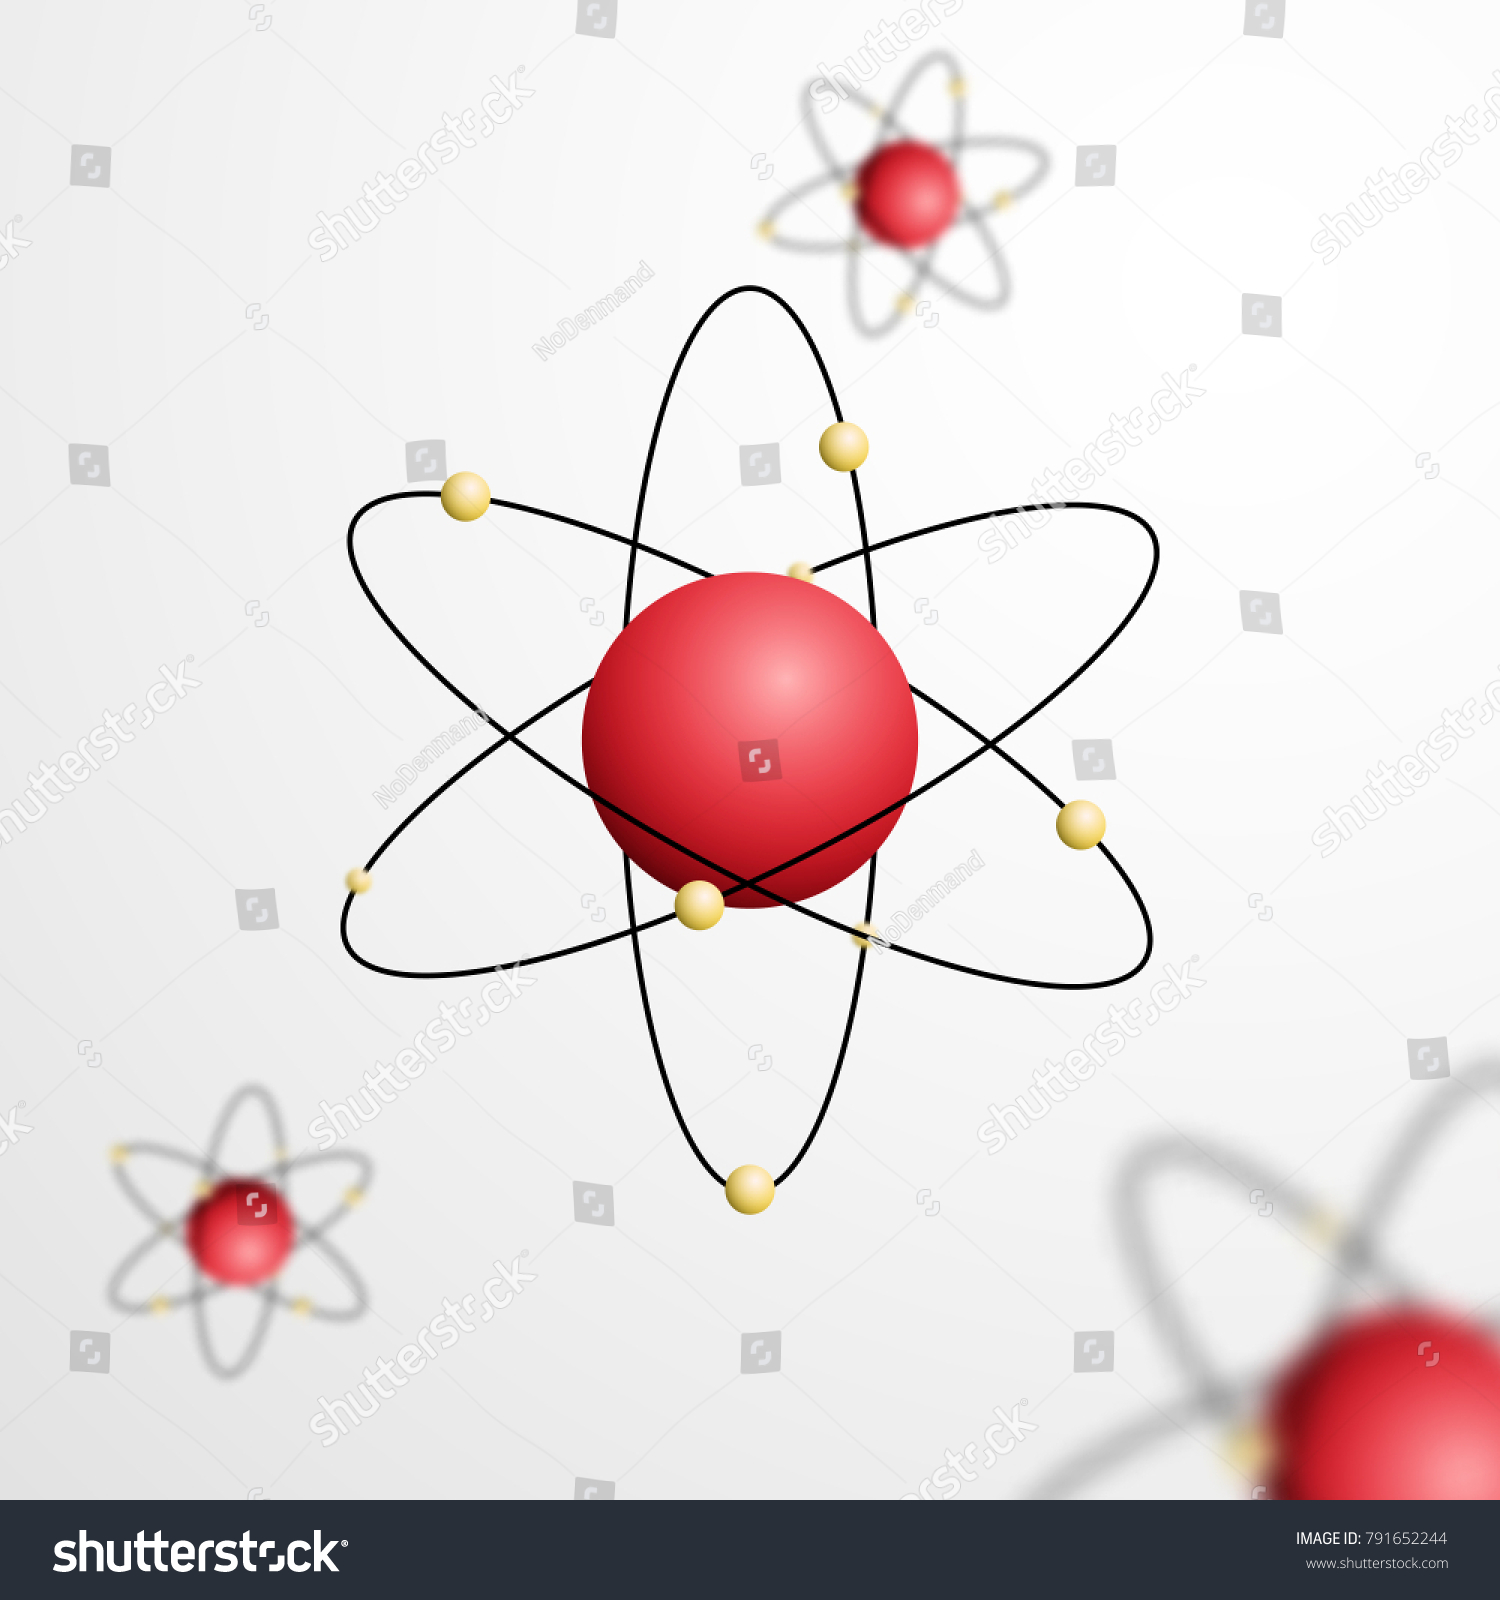 Abstract atom core orbits electrons vector stock vector 791652244 abstract atom with core and orbits with electrons vector illustration 3d chemical technology concept ccuart Gallery